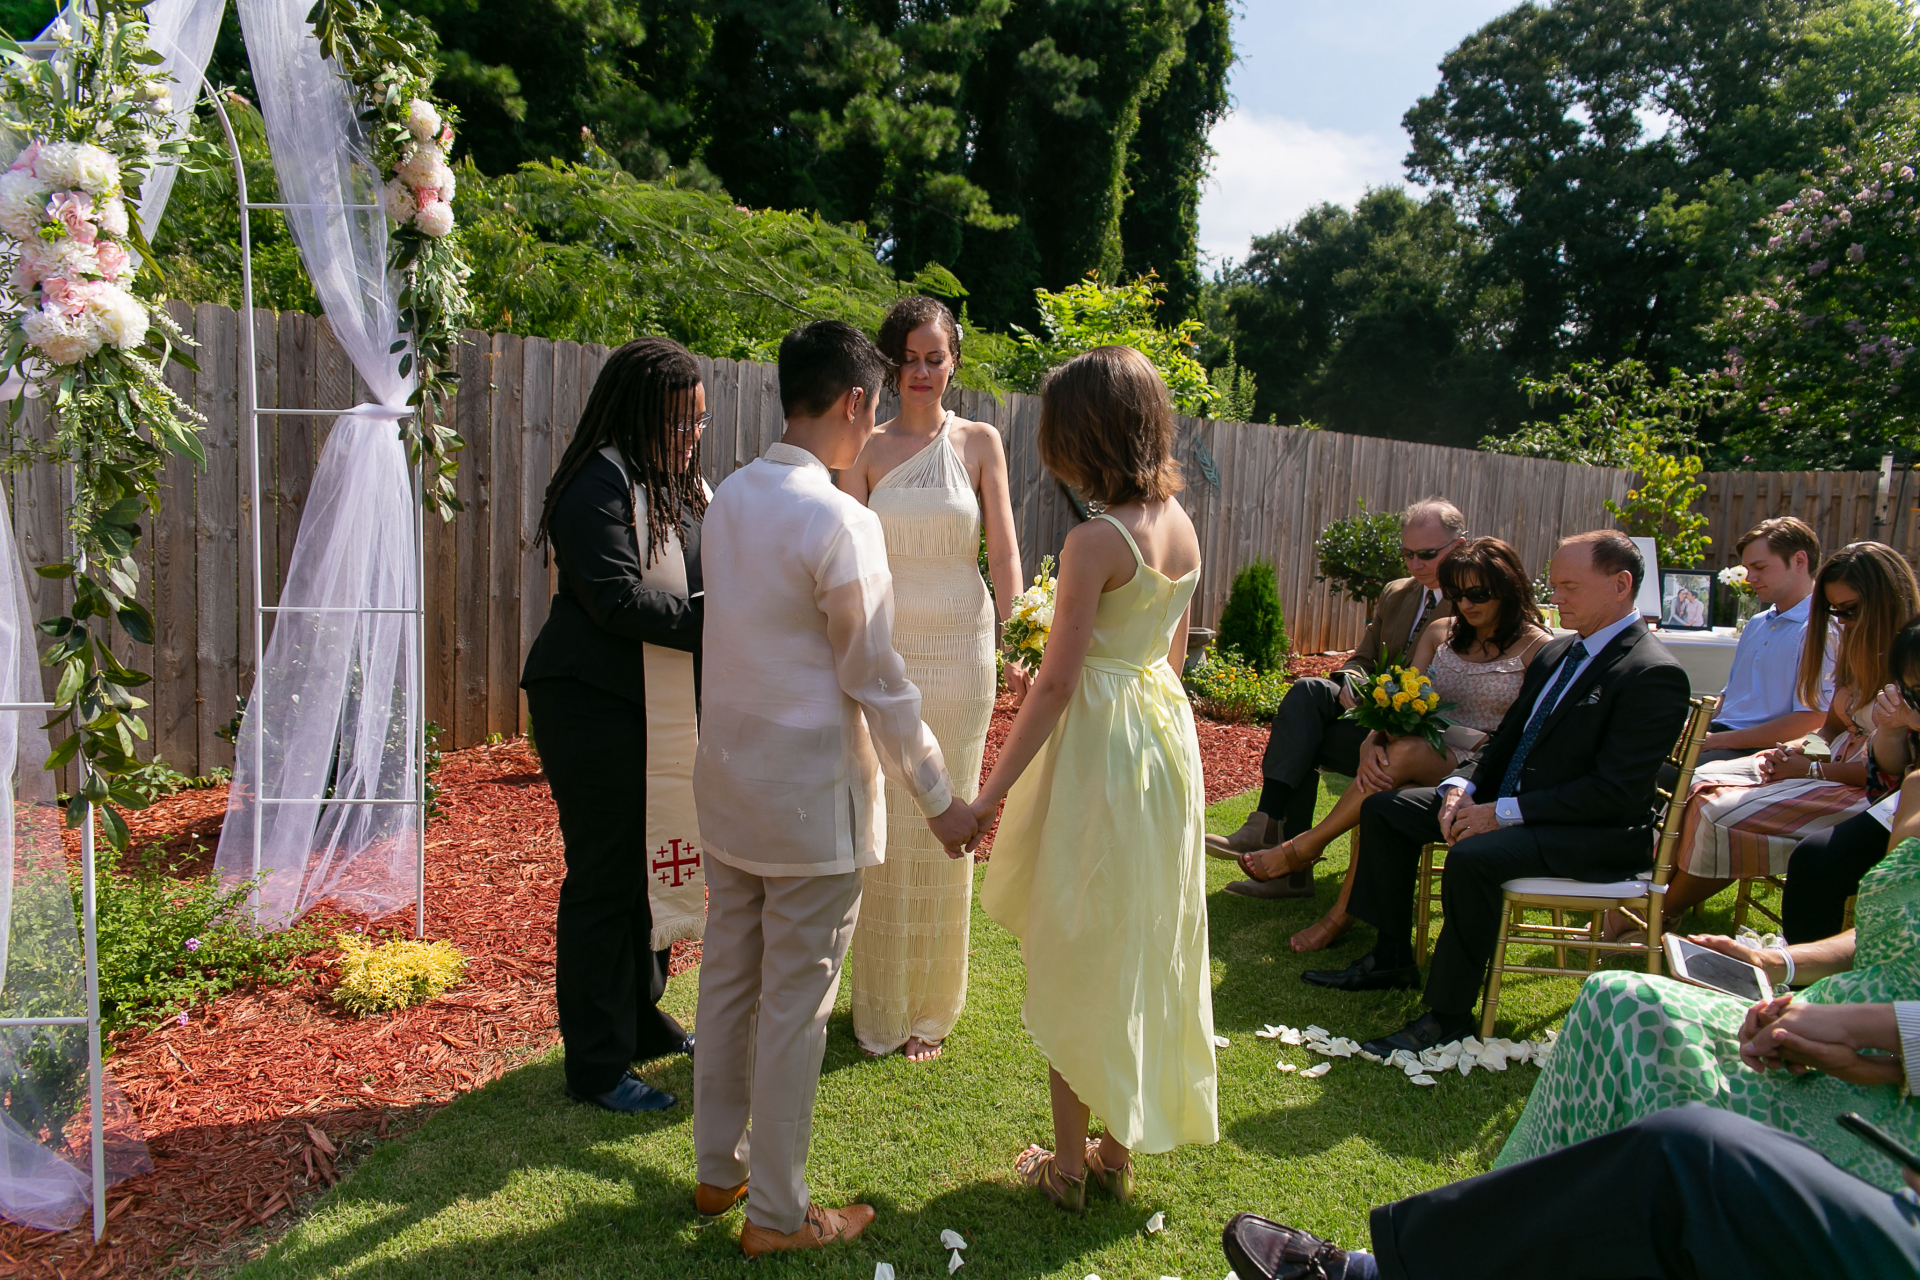 Backyard At-Home Elopement Ceremony Photo | The couple pray during the ceremony